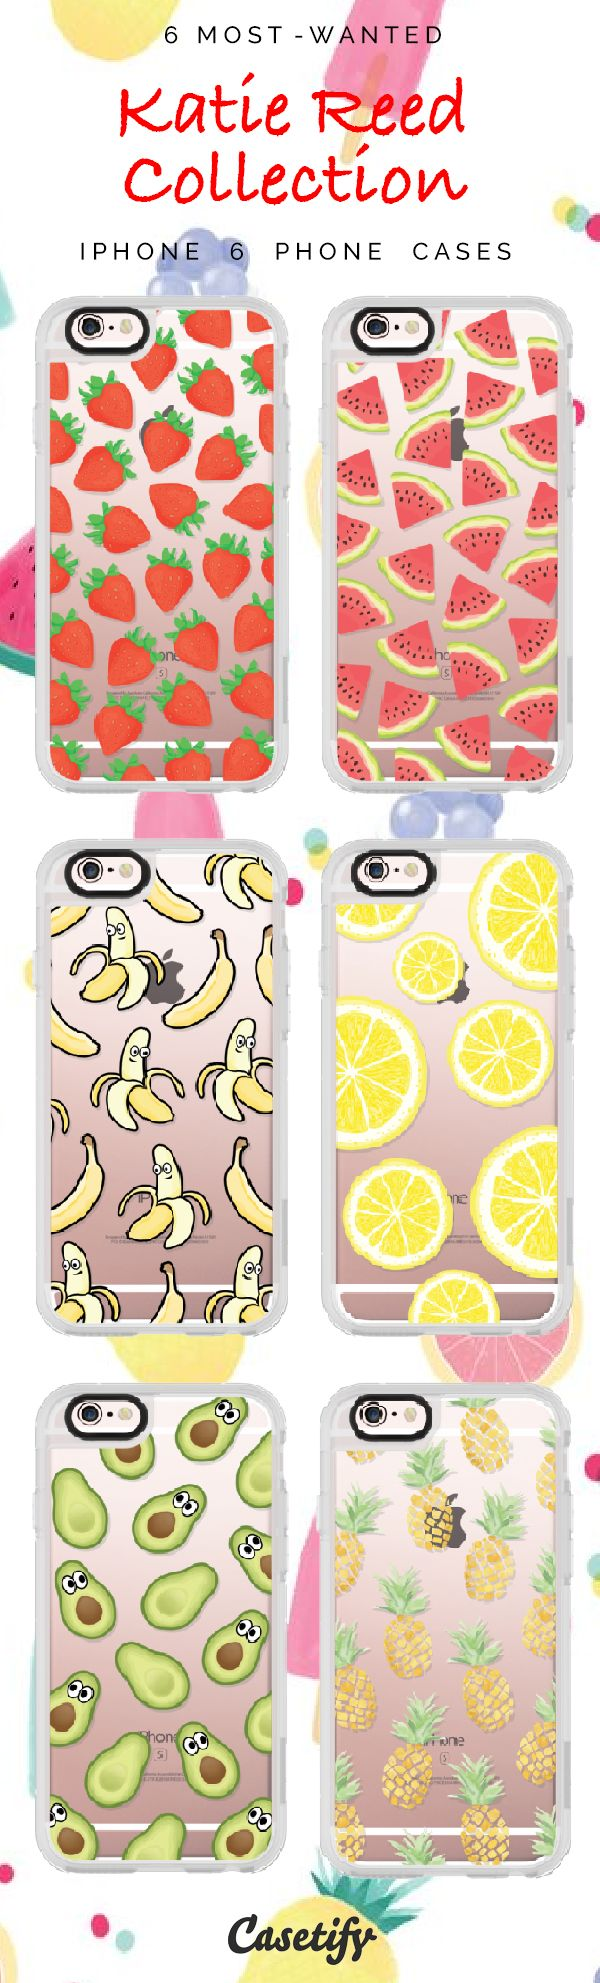 Top 6 Katie Reed collection iPhone 6 protective phone case designs | Click through to see more iPhone phone case idea >>>https://www.casetify.com/katscases/collection | @casetify